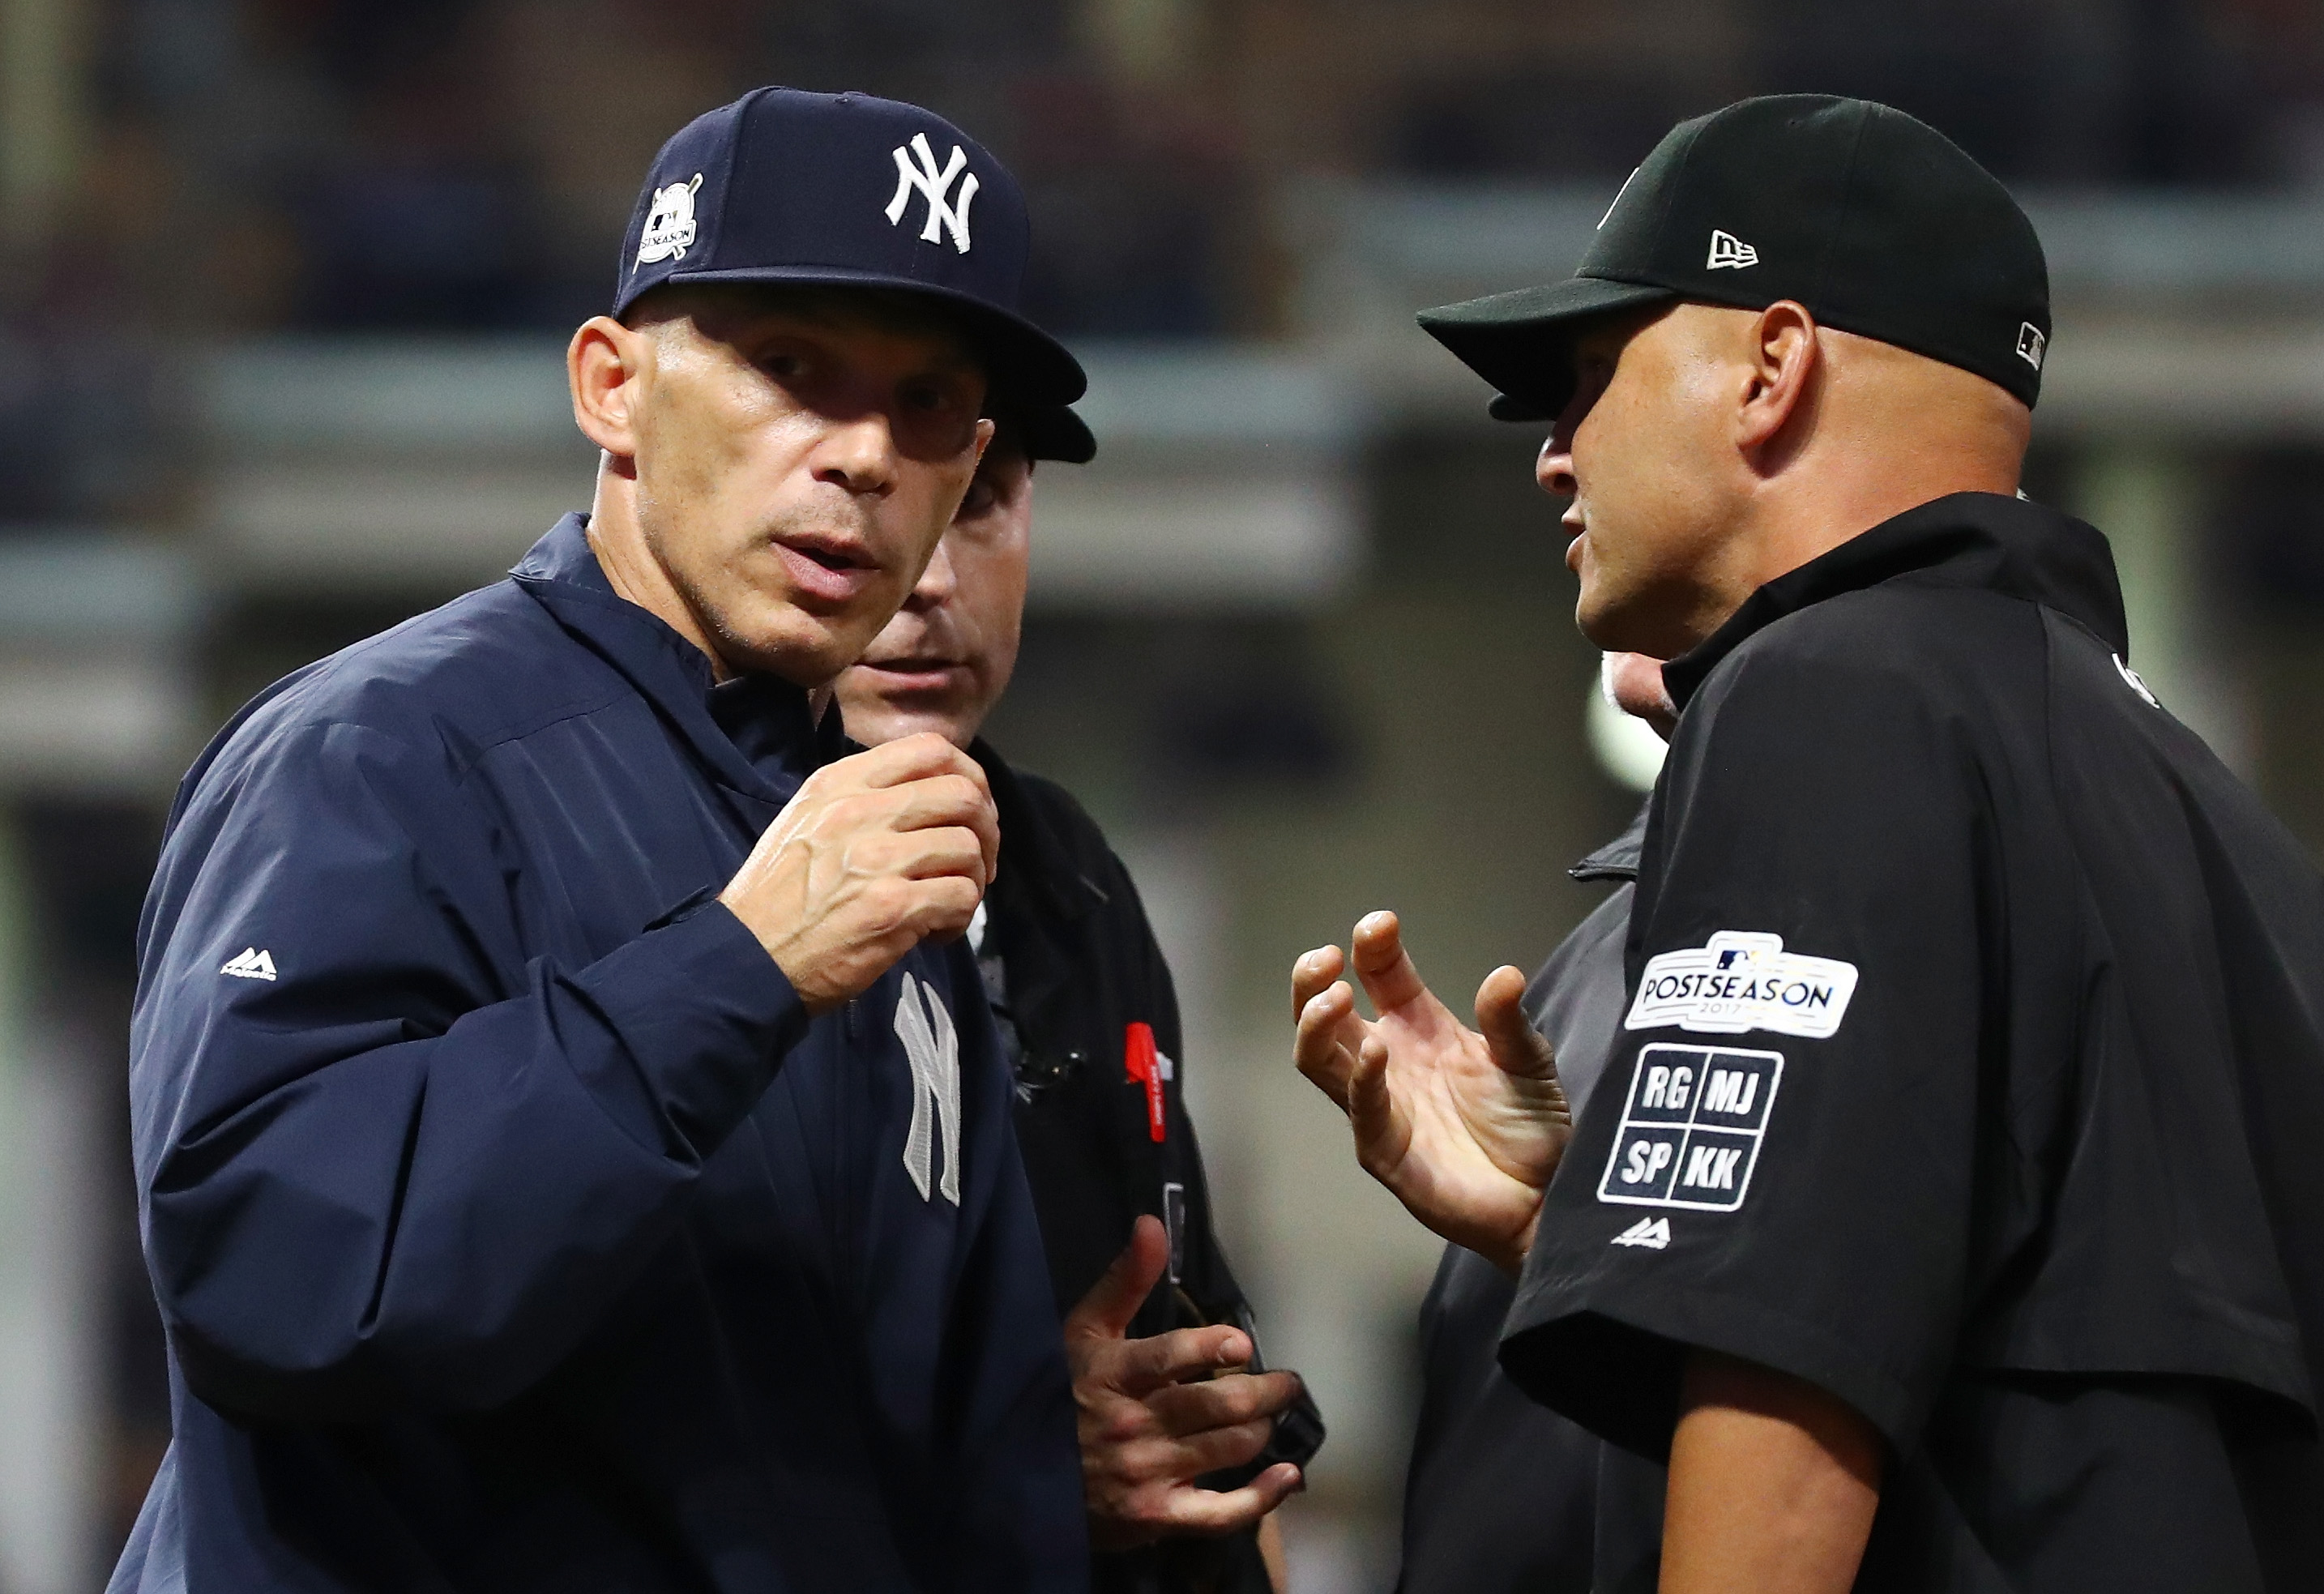 Social media explodes over Joe Girardi's decision not to challenge